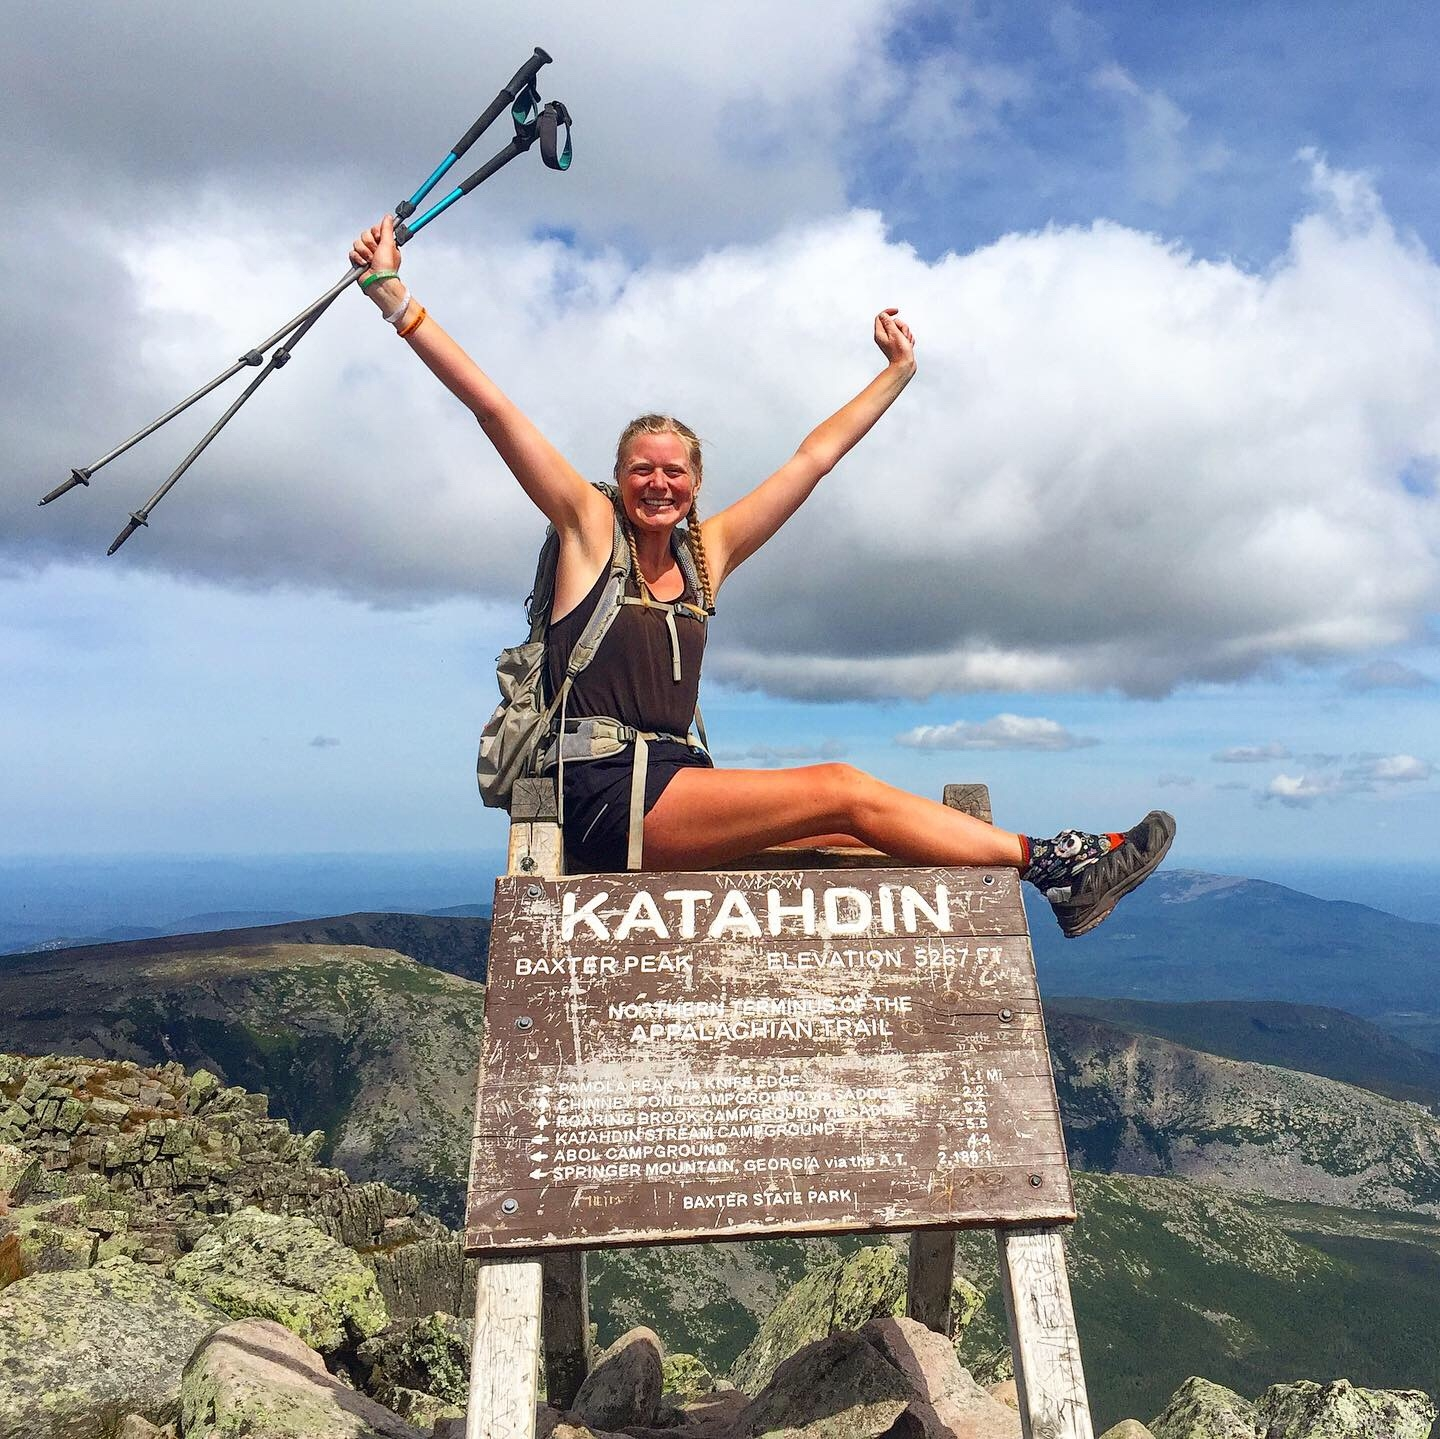 Congrats to These 2019 Appalachian Trail Thru-Hikers: September 4 - September 11 - The Trek